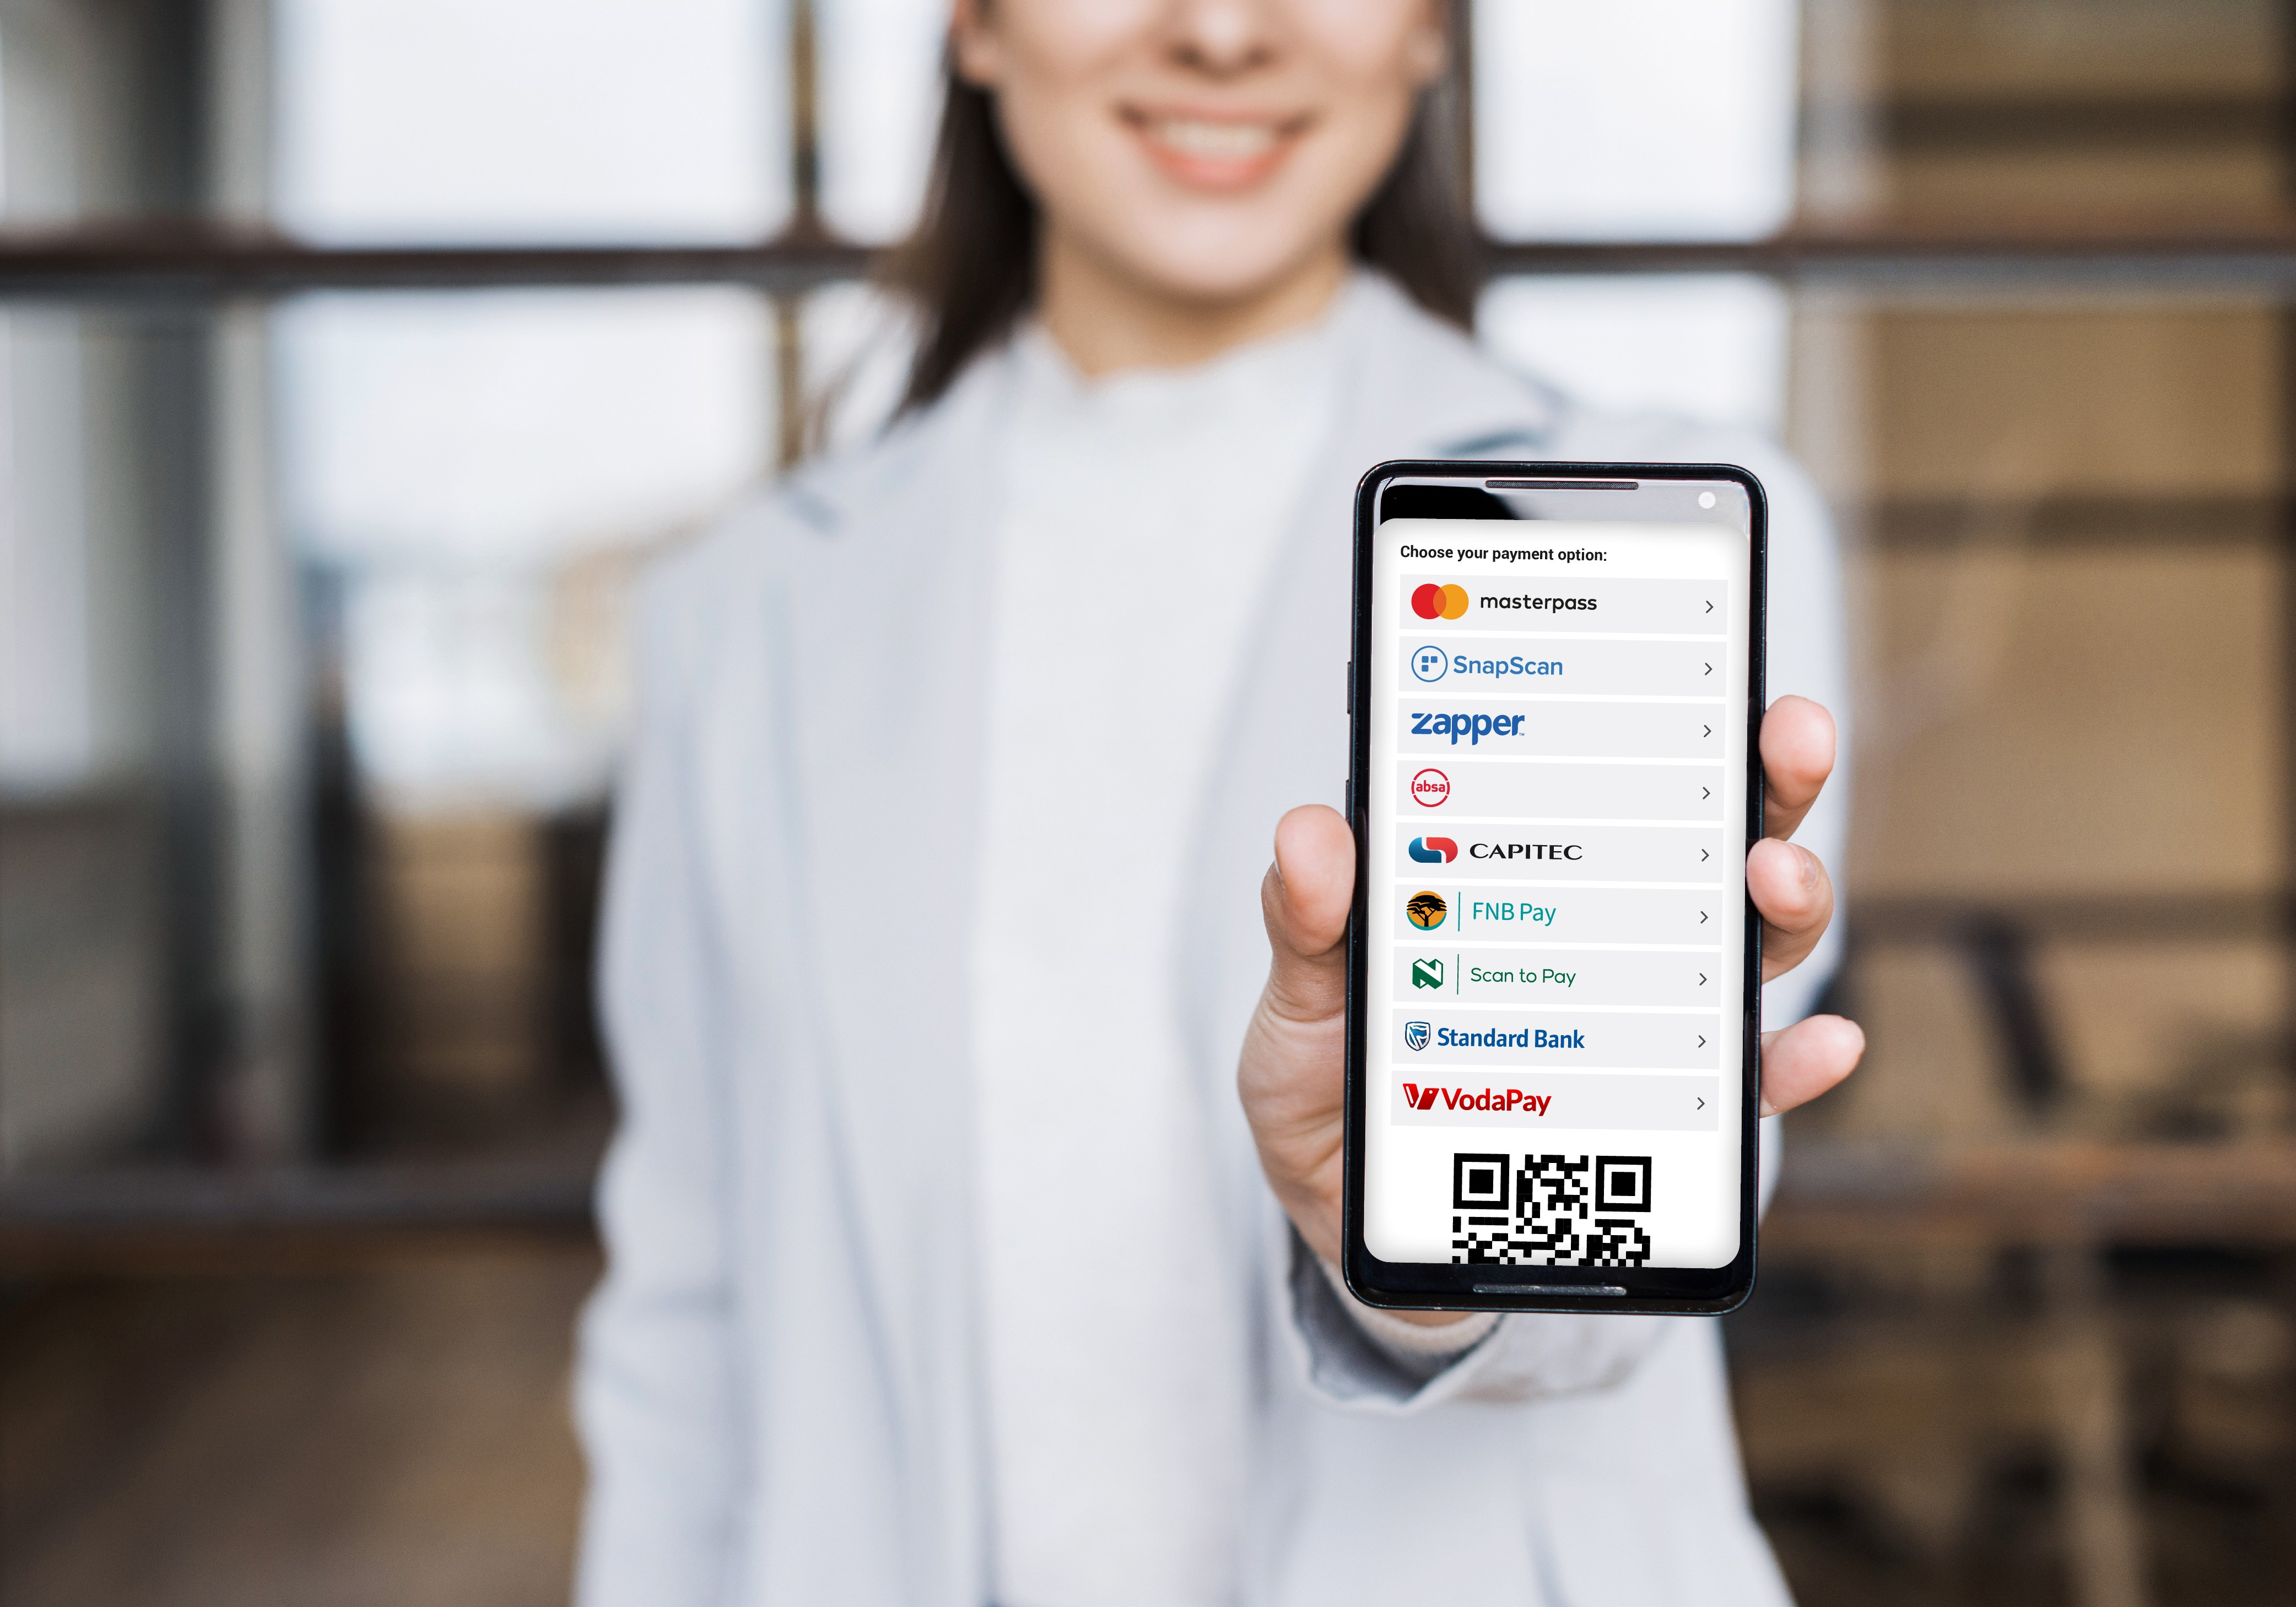 mastercard and netcash launch qr code billing service for